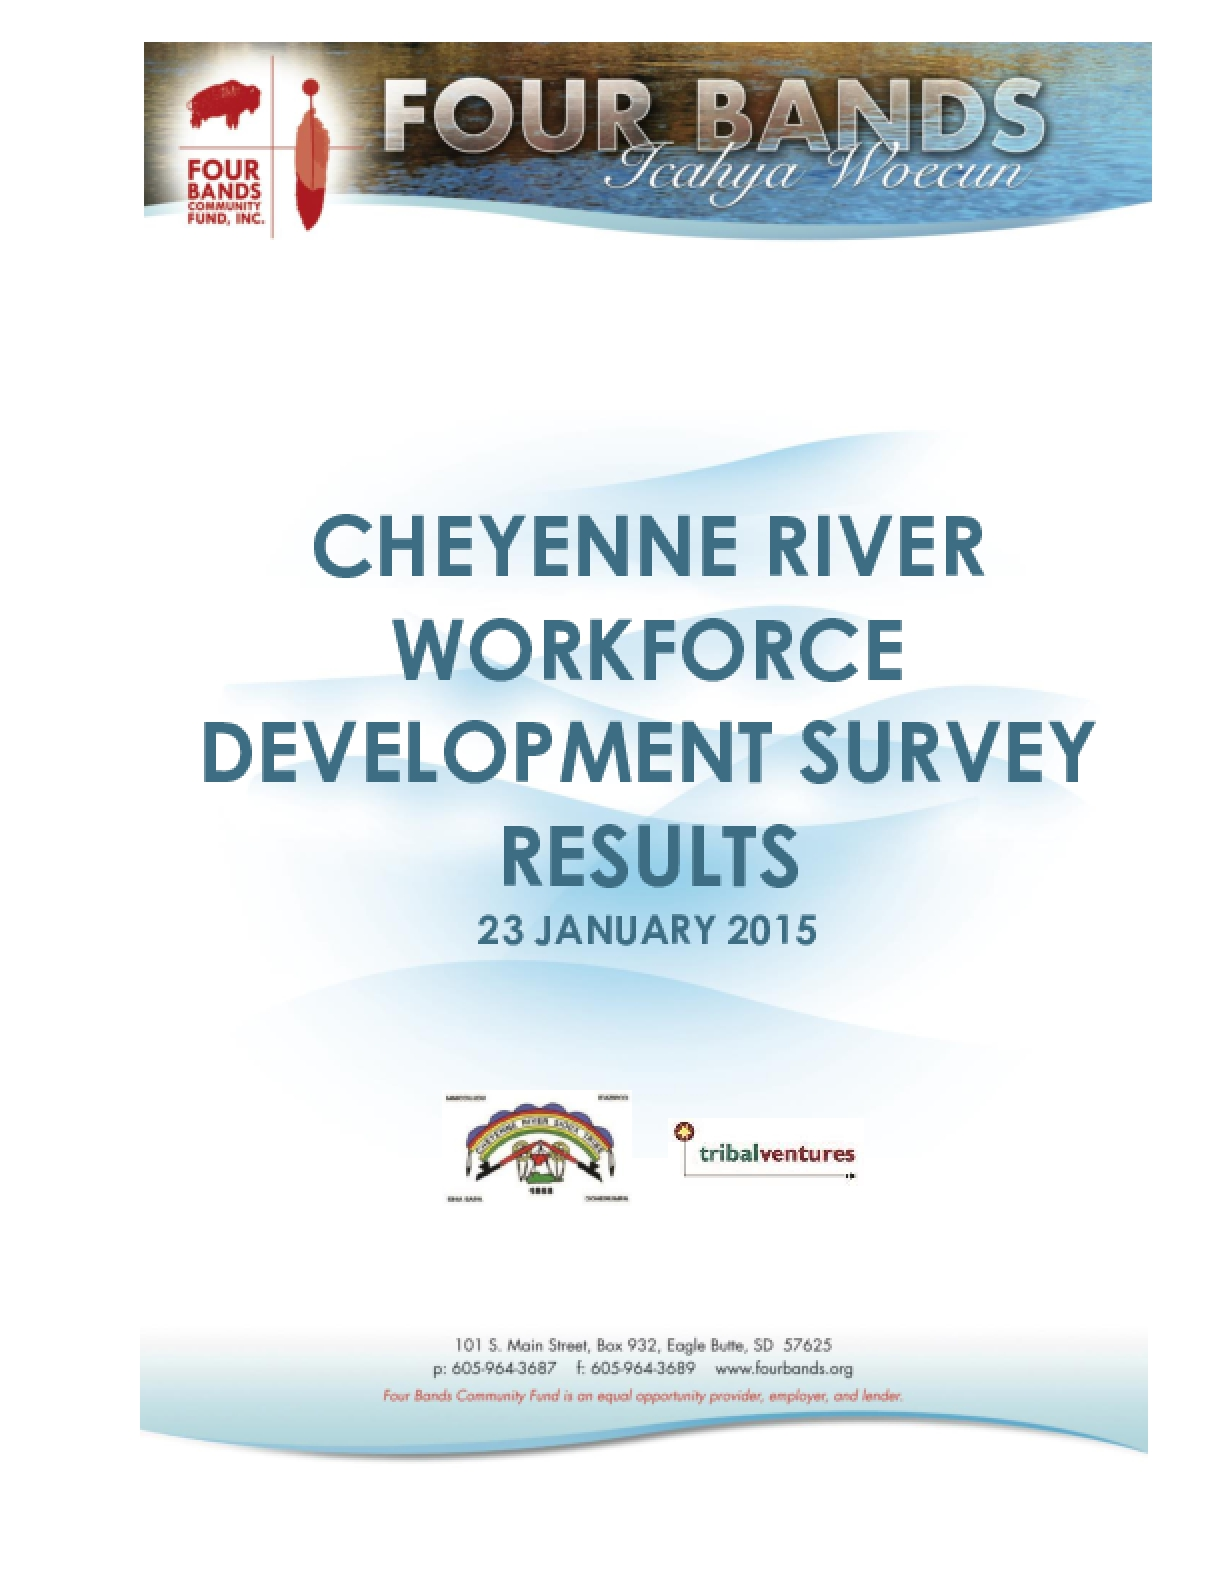 Cheyenne River Workforce Development Survey Results